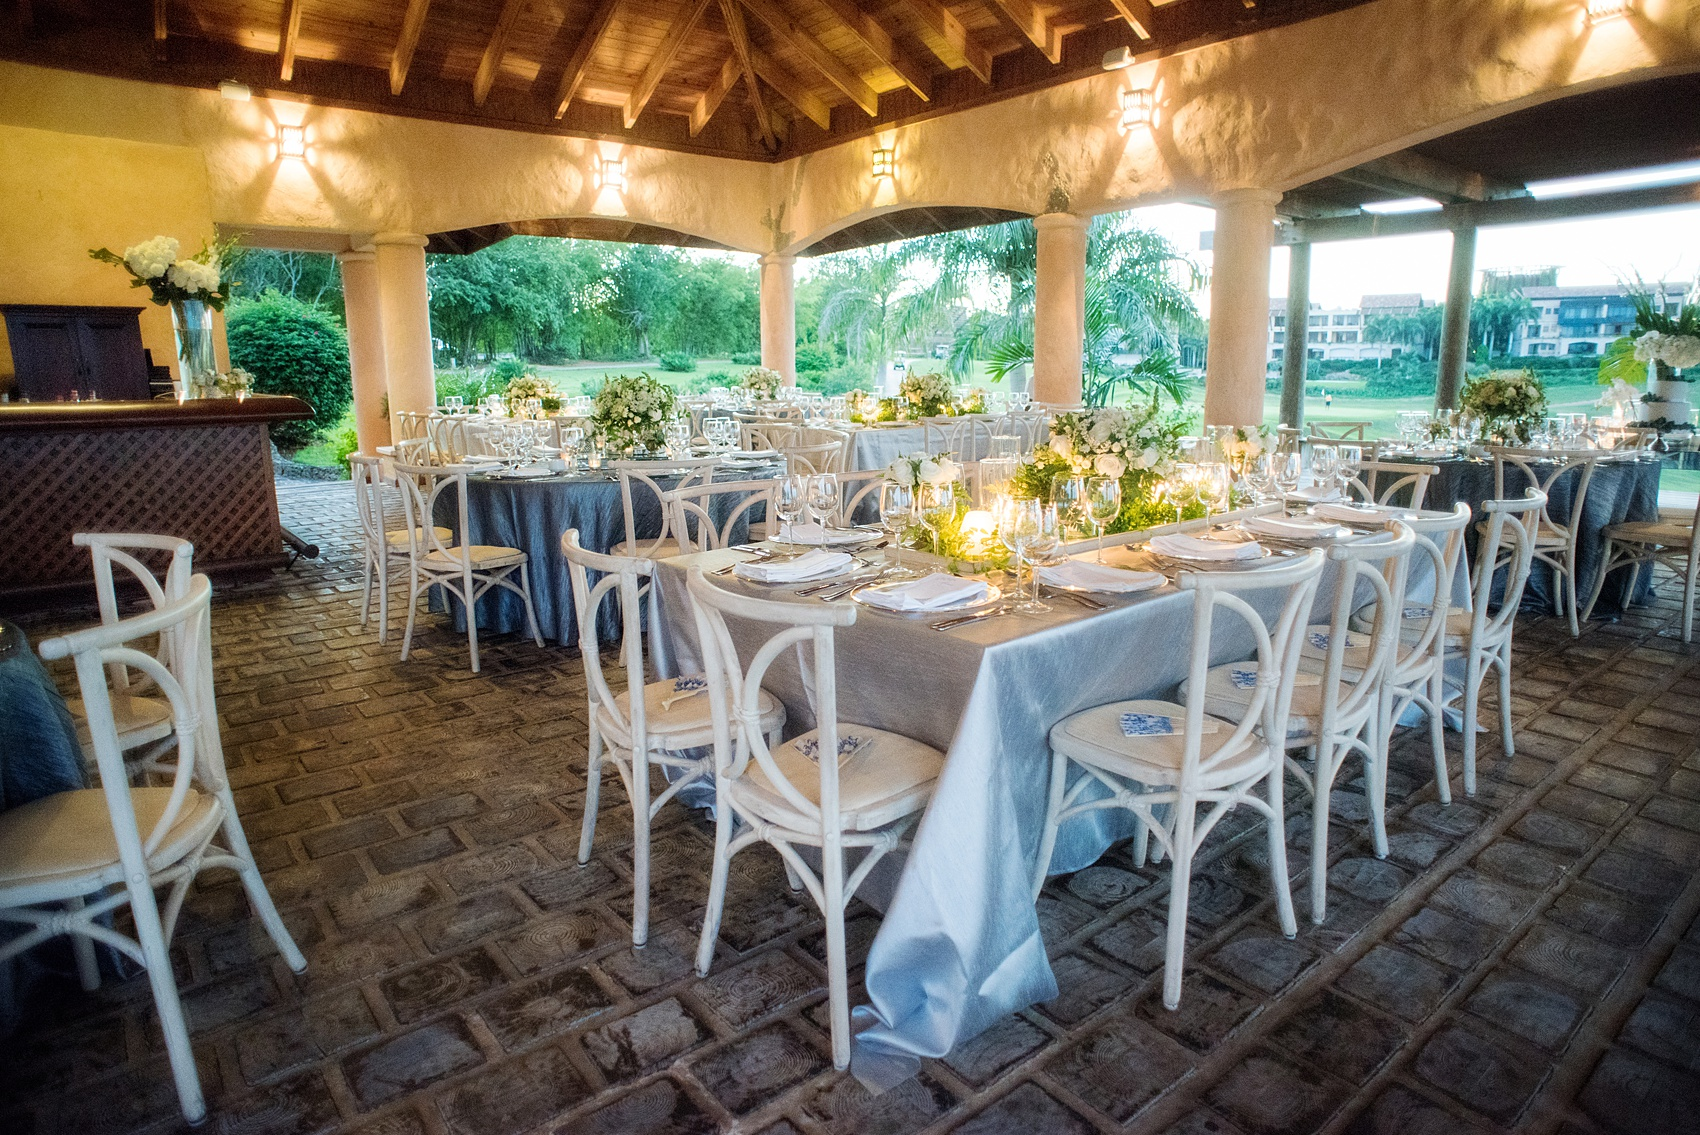 Casa de Campo in the Dominican Republic is a great location for a destination wedding. It's in La Romana, an hour from Punta Cana, and is an all inclusive resort with Minitas beach and mountains view. It's a beautiful venue, evidenced by these pictures by destination wedding photographer, Mikkel Paige Photography. Click through for more blue + white ceremony and reception ideas! Planning by @theeventeur. #mikkelpaige #bluewedding #dominicanrepublicwedidng #destinationweddingphotographer